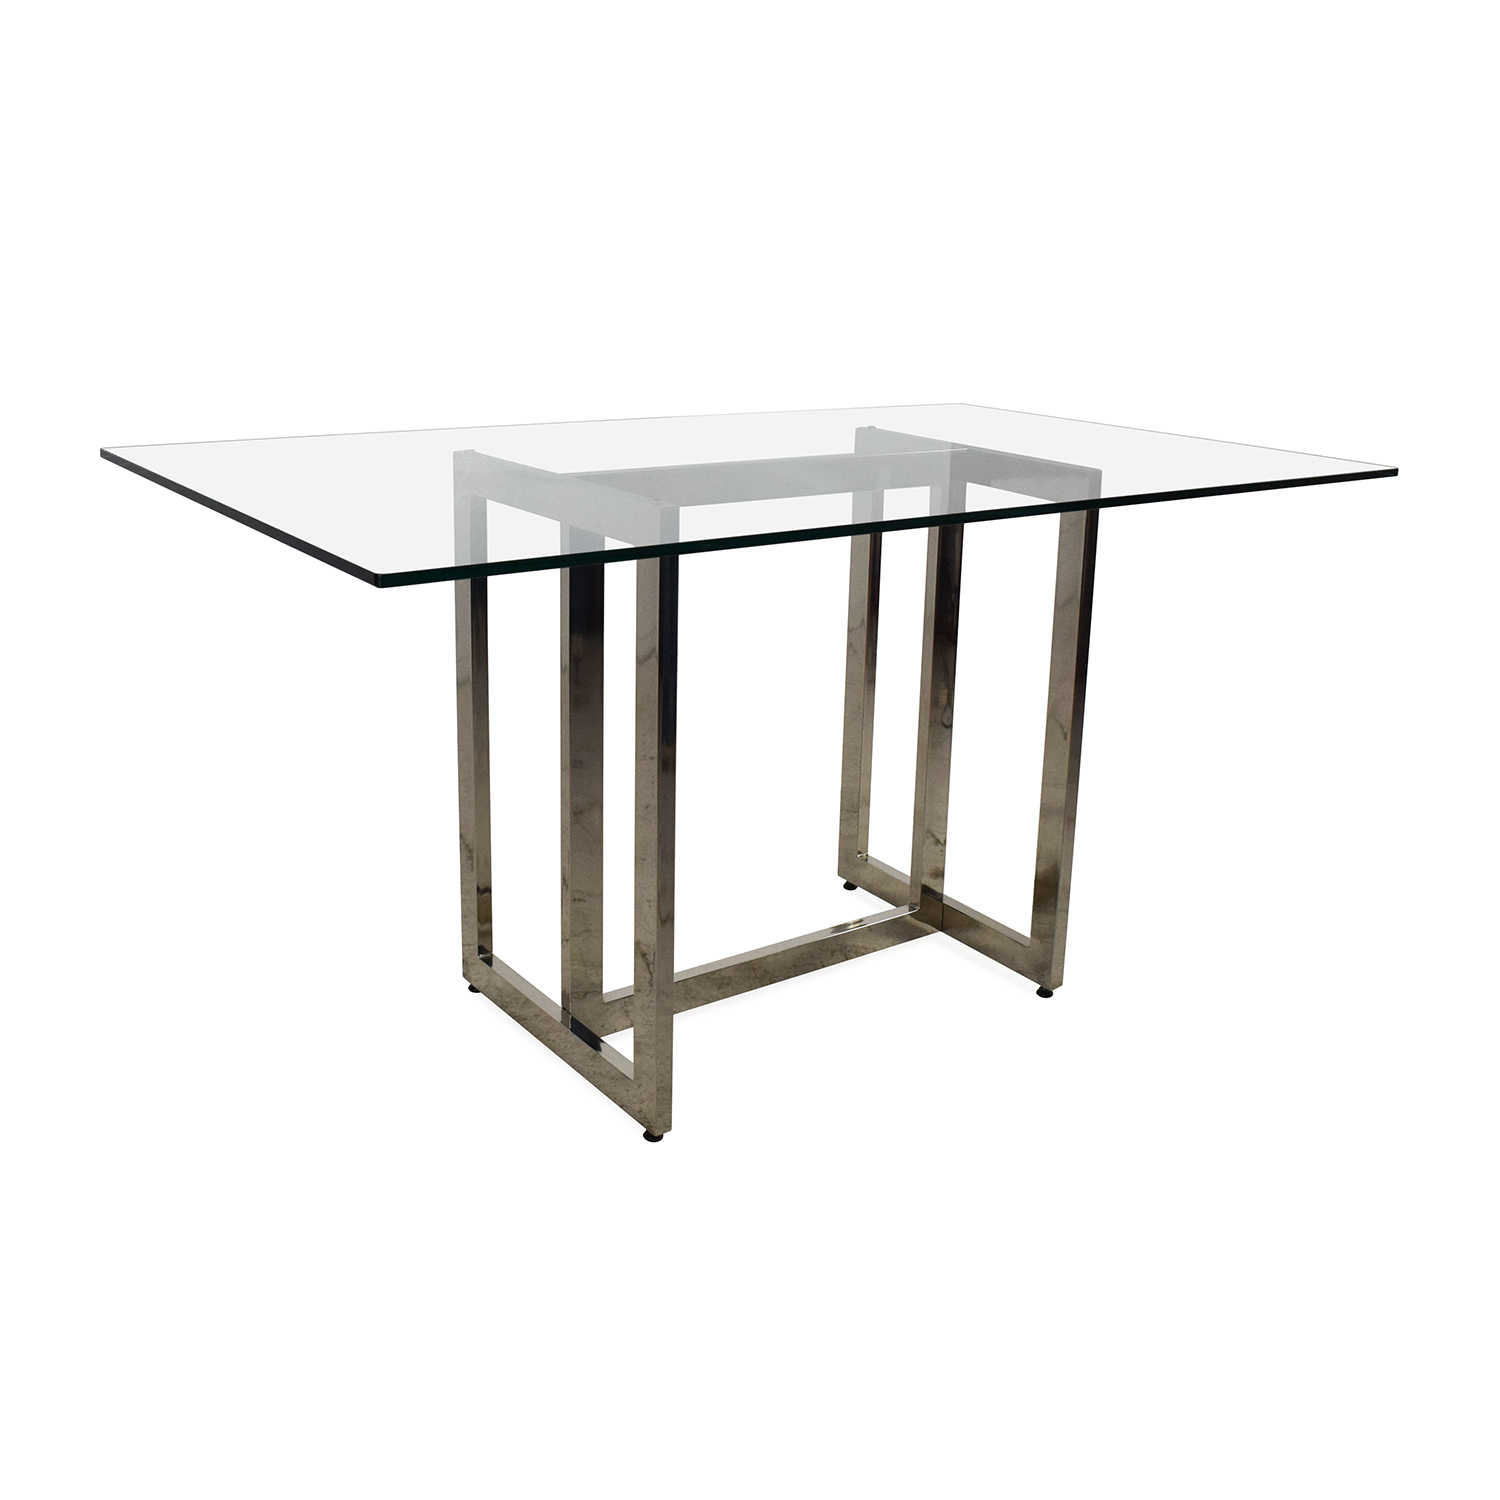 Dining Table West Elm Choice Image Dining Table Ideas : west elm hicks glass top dining table used from sorahana.info size 1500 x 1500 jpeg 240kB